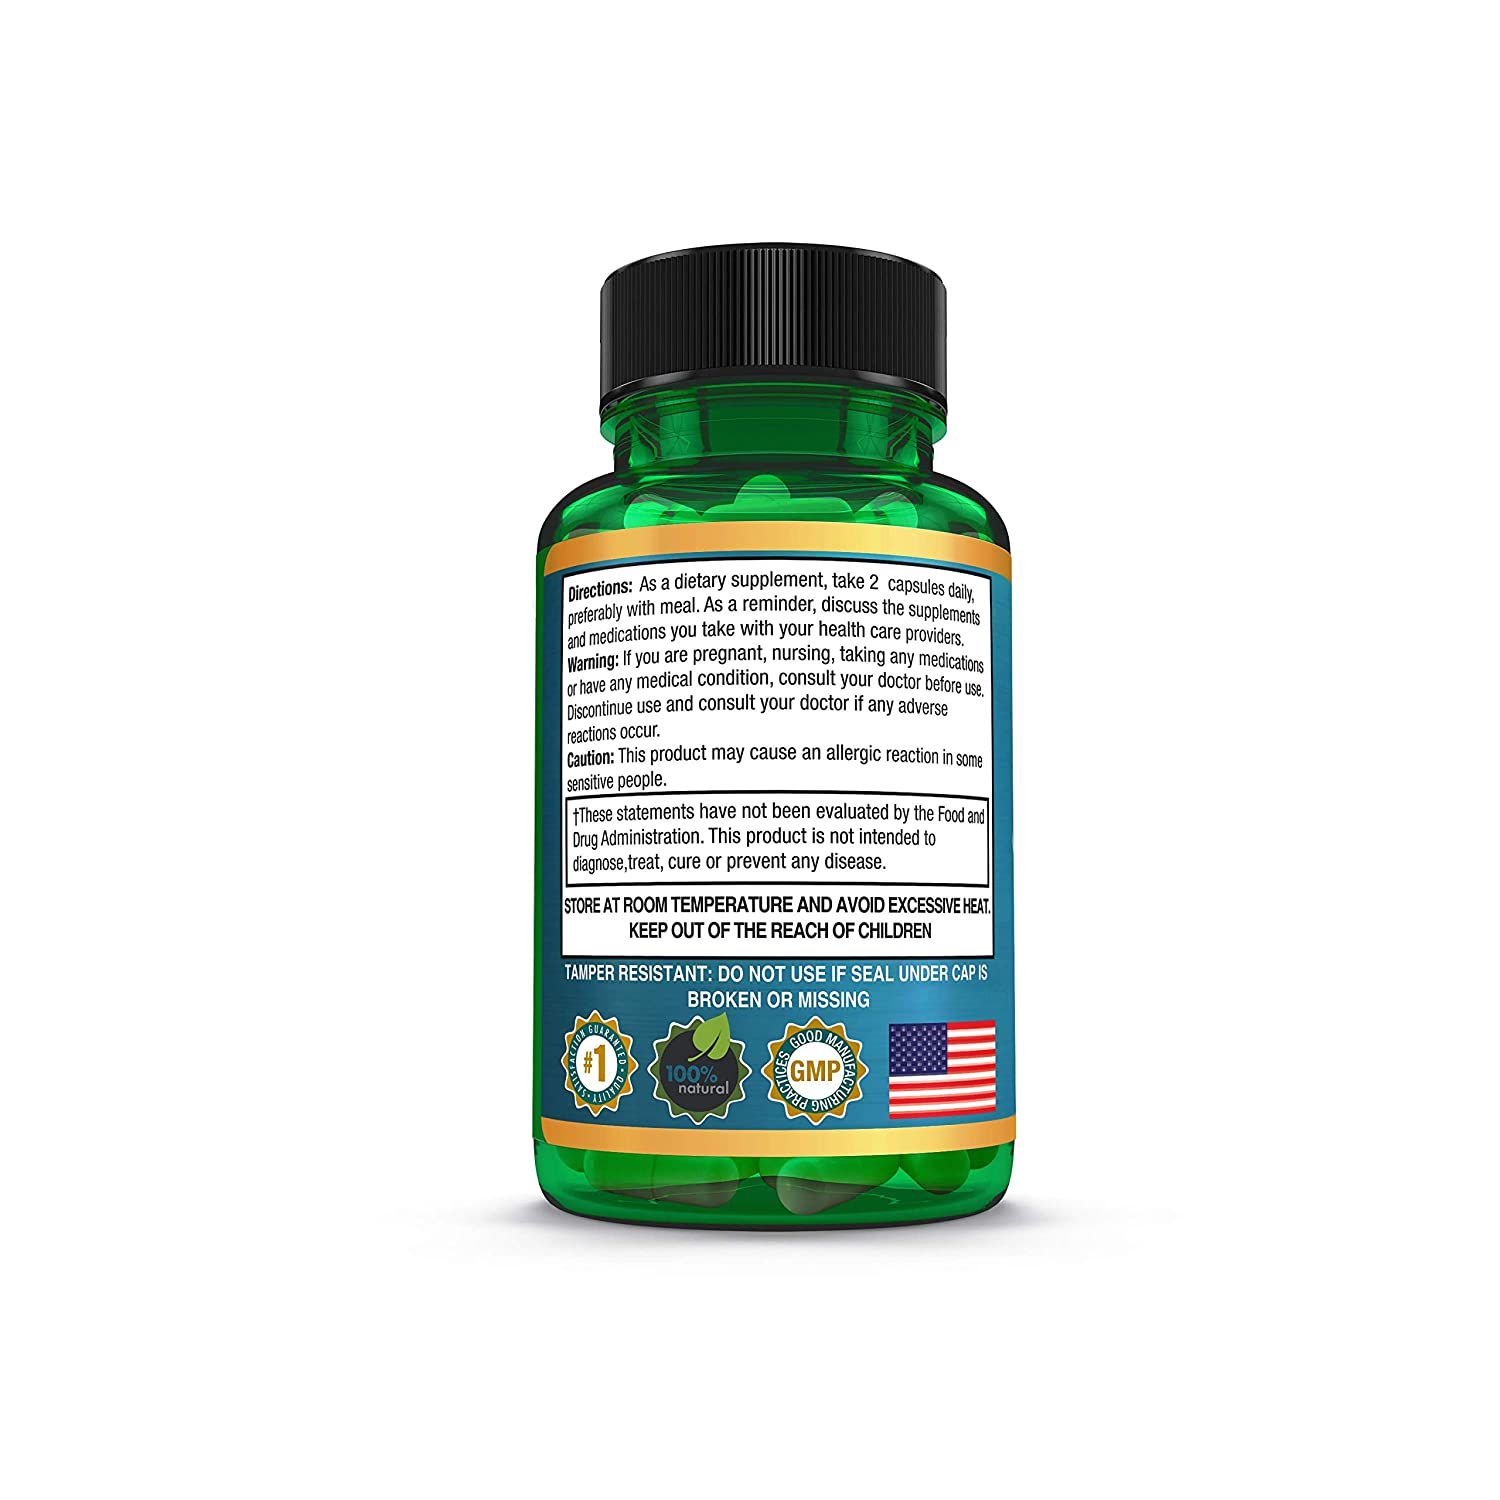 Amazon.com: Green Choice Collagen, Vitamin C, Hyaluronic Acid & Magnesium (60), Healthy Hair, Skin and Nails, Colageno Hidrolizado, Anti Arrugas,: Health ...